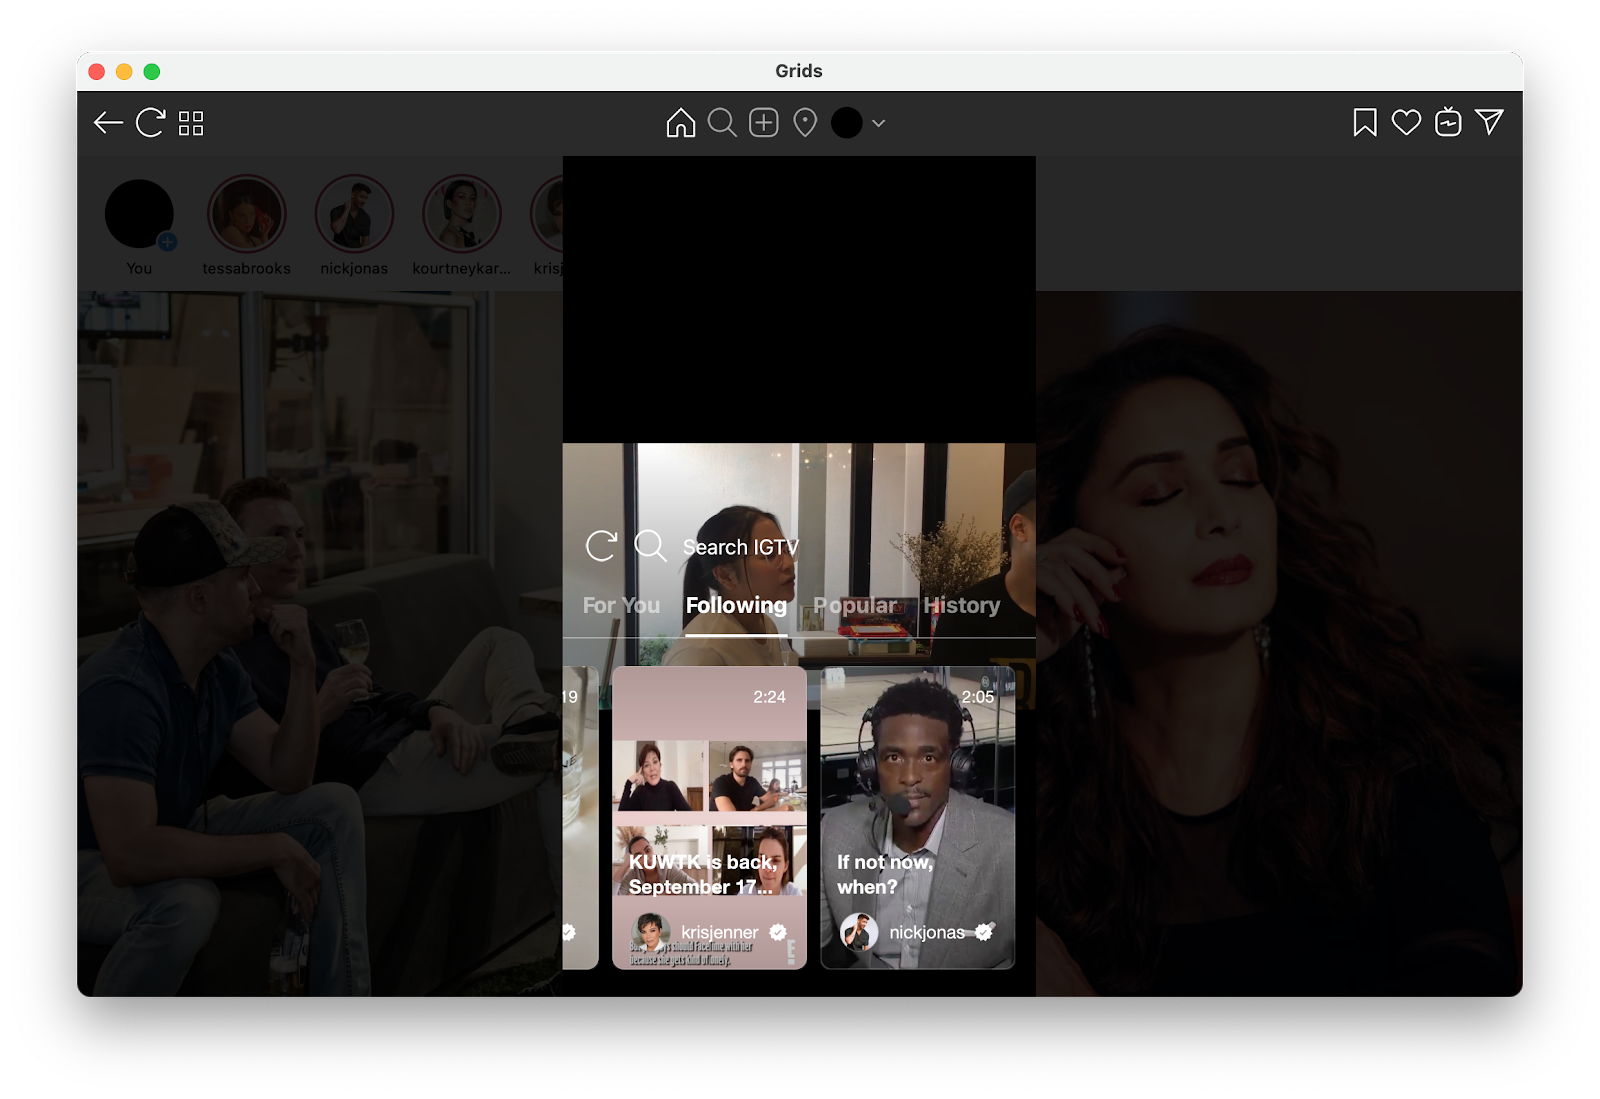 Post Instagram Stories directly from Mac